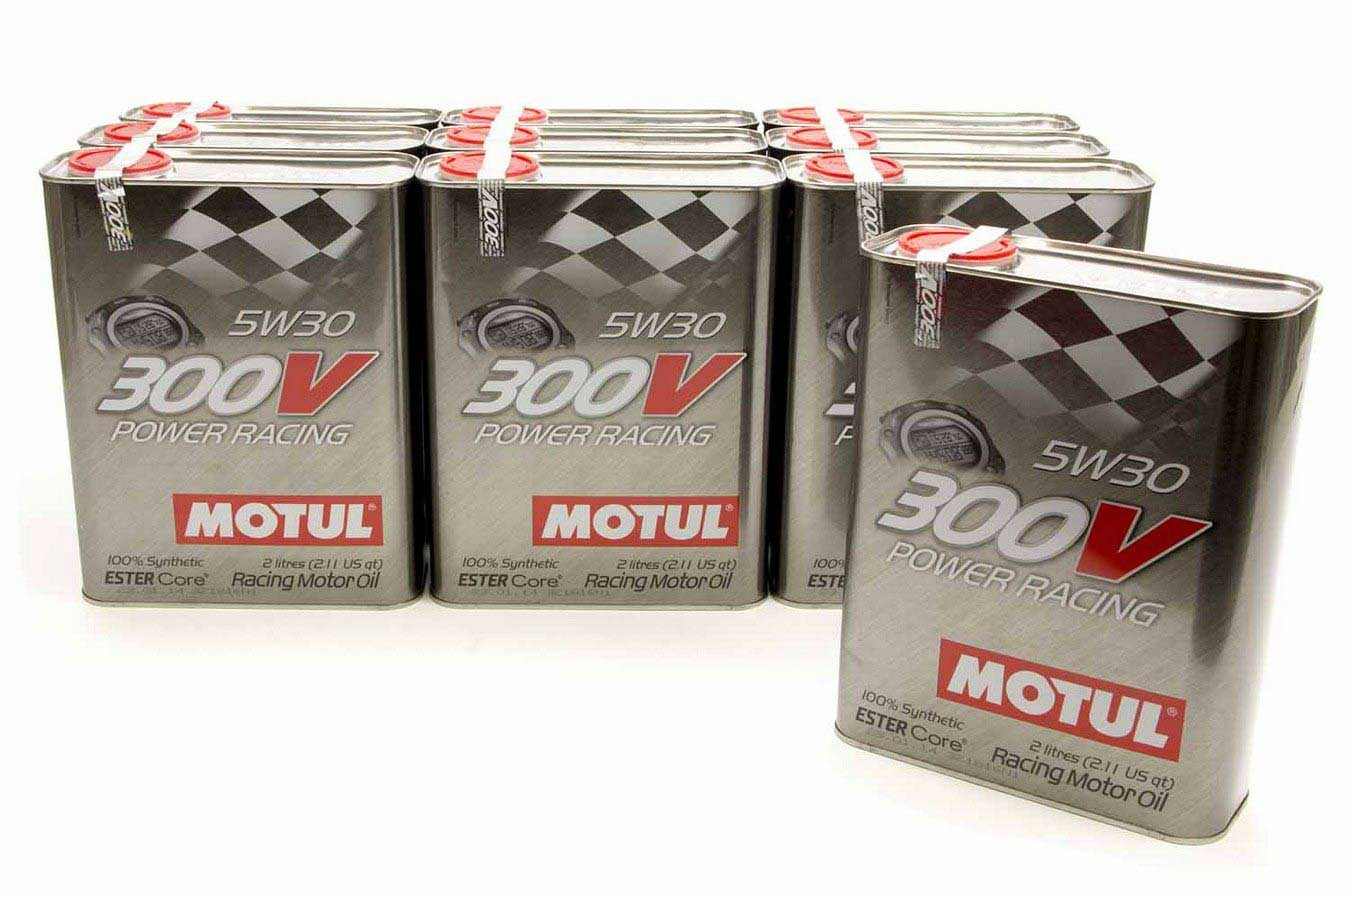 300V 5w30 Racing Oil Synthetic Case 10x2Liter